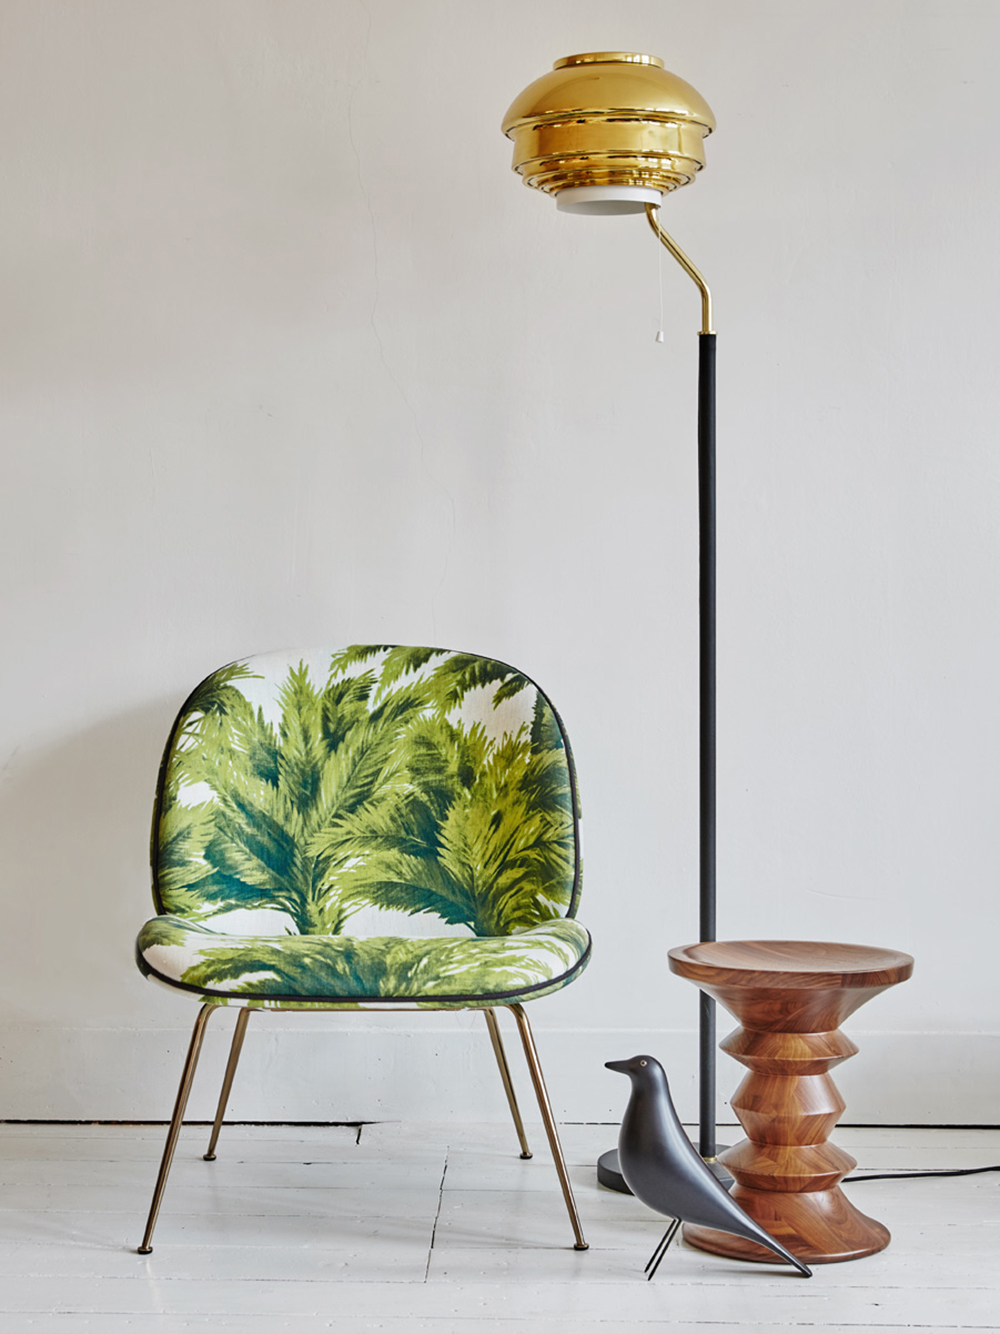 Gubi Beetle chair by GamFratesi - Tropical upholstery - Transform your home into a tropical paradise | Aliz's Wonderland